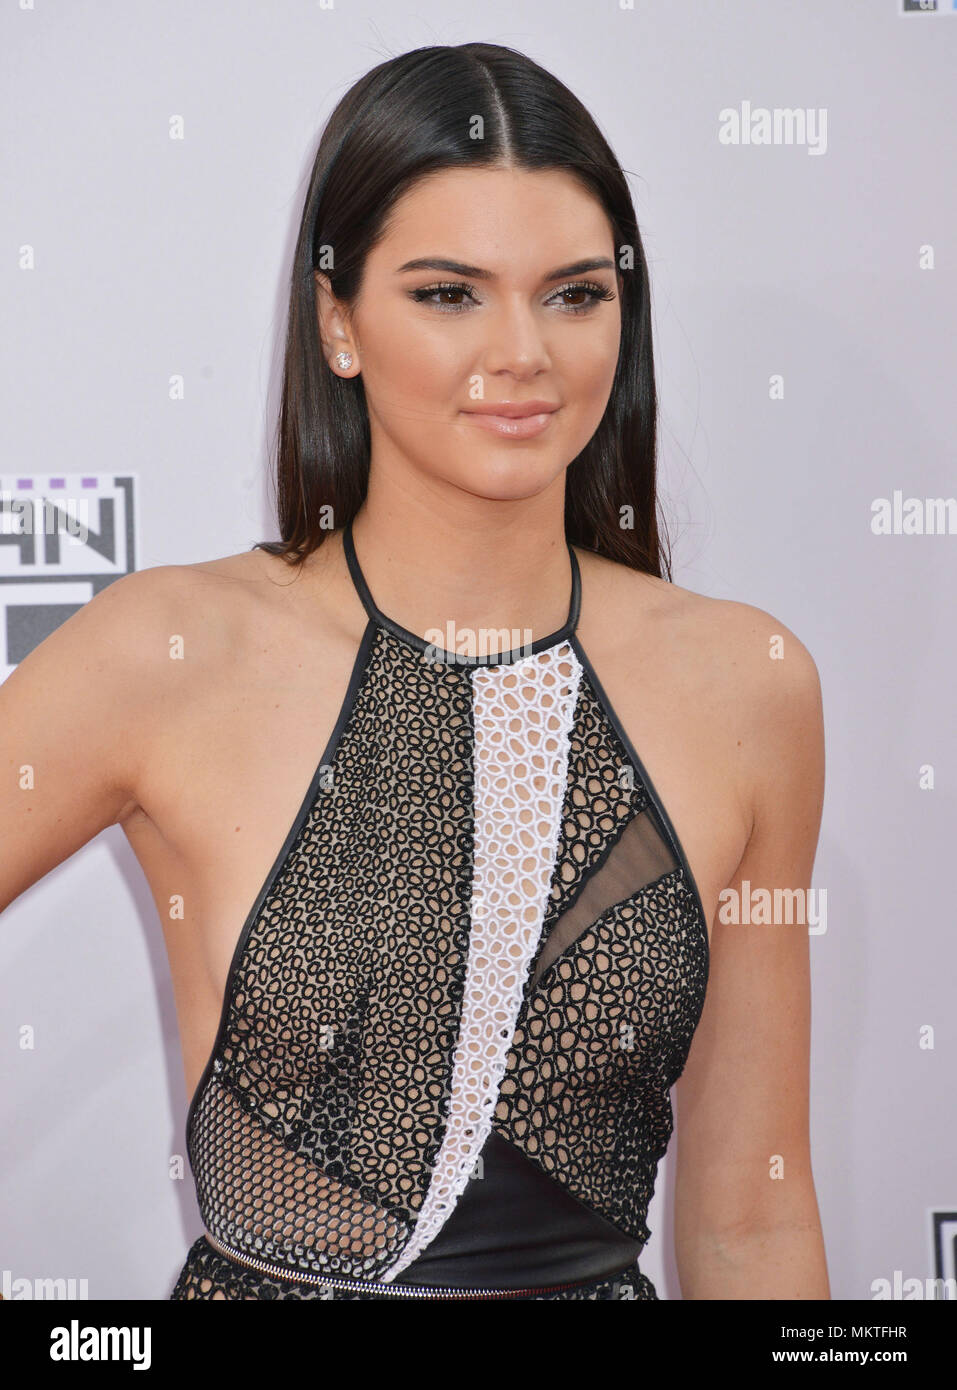 Celebrites Kendall Jenner nude (62 foto and video), Pussy, Fappening, Selfie, butt 2018